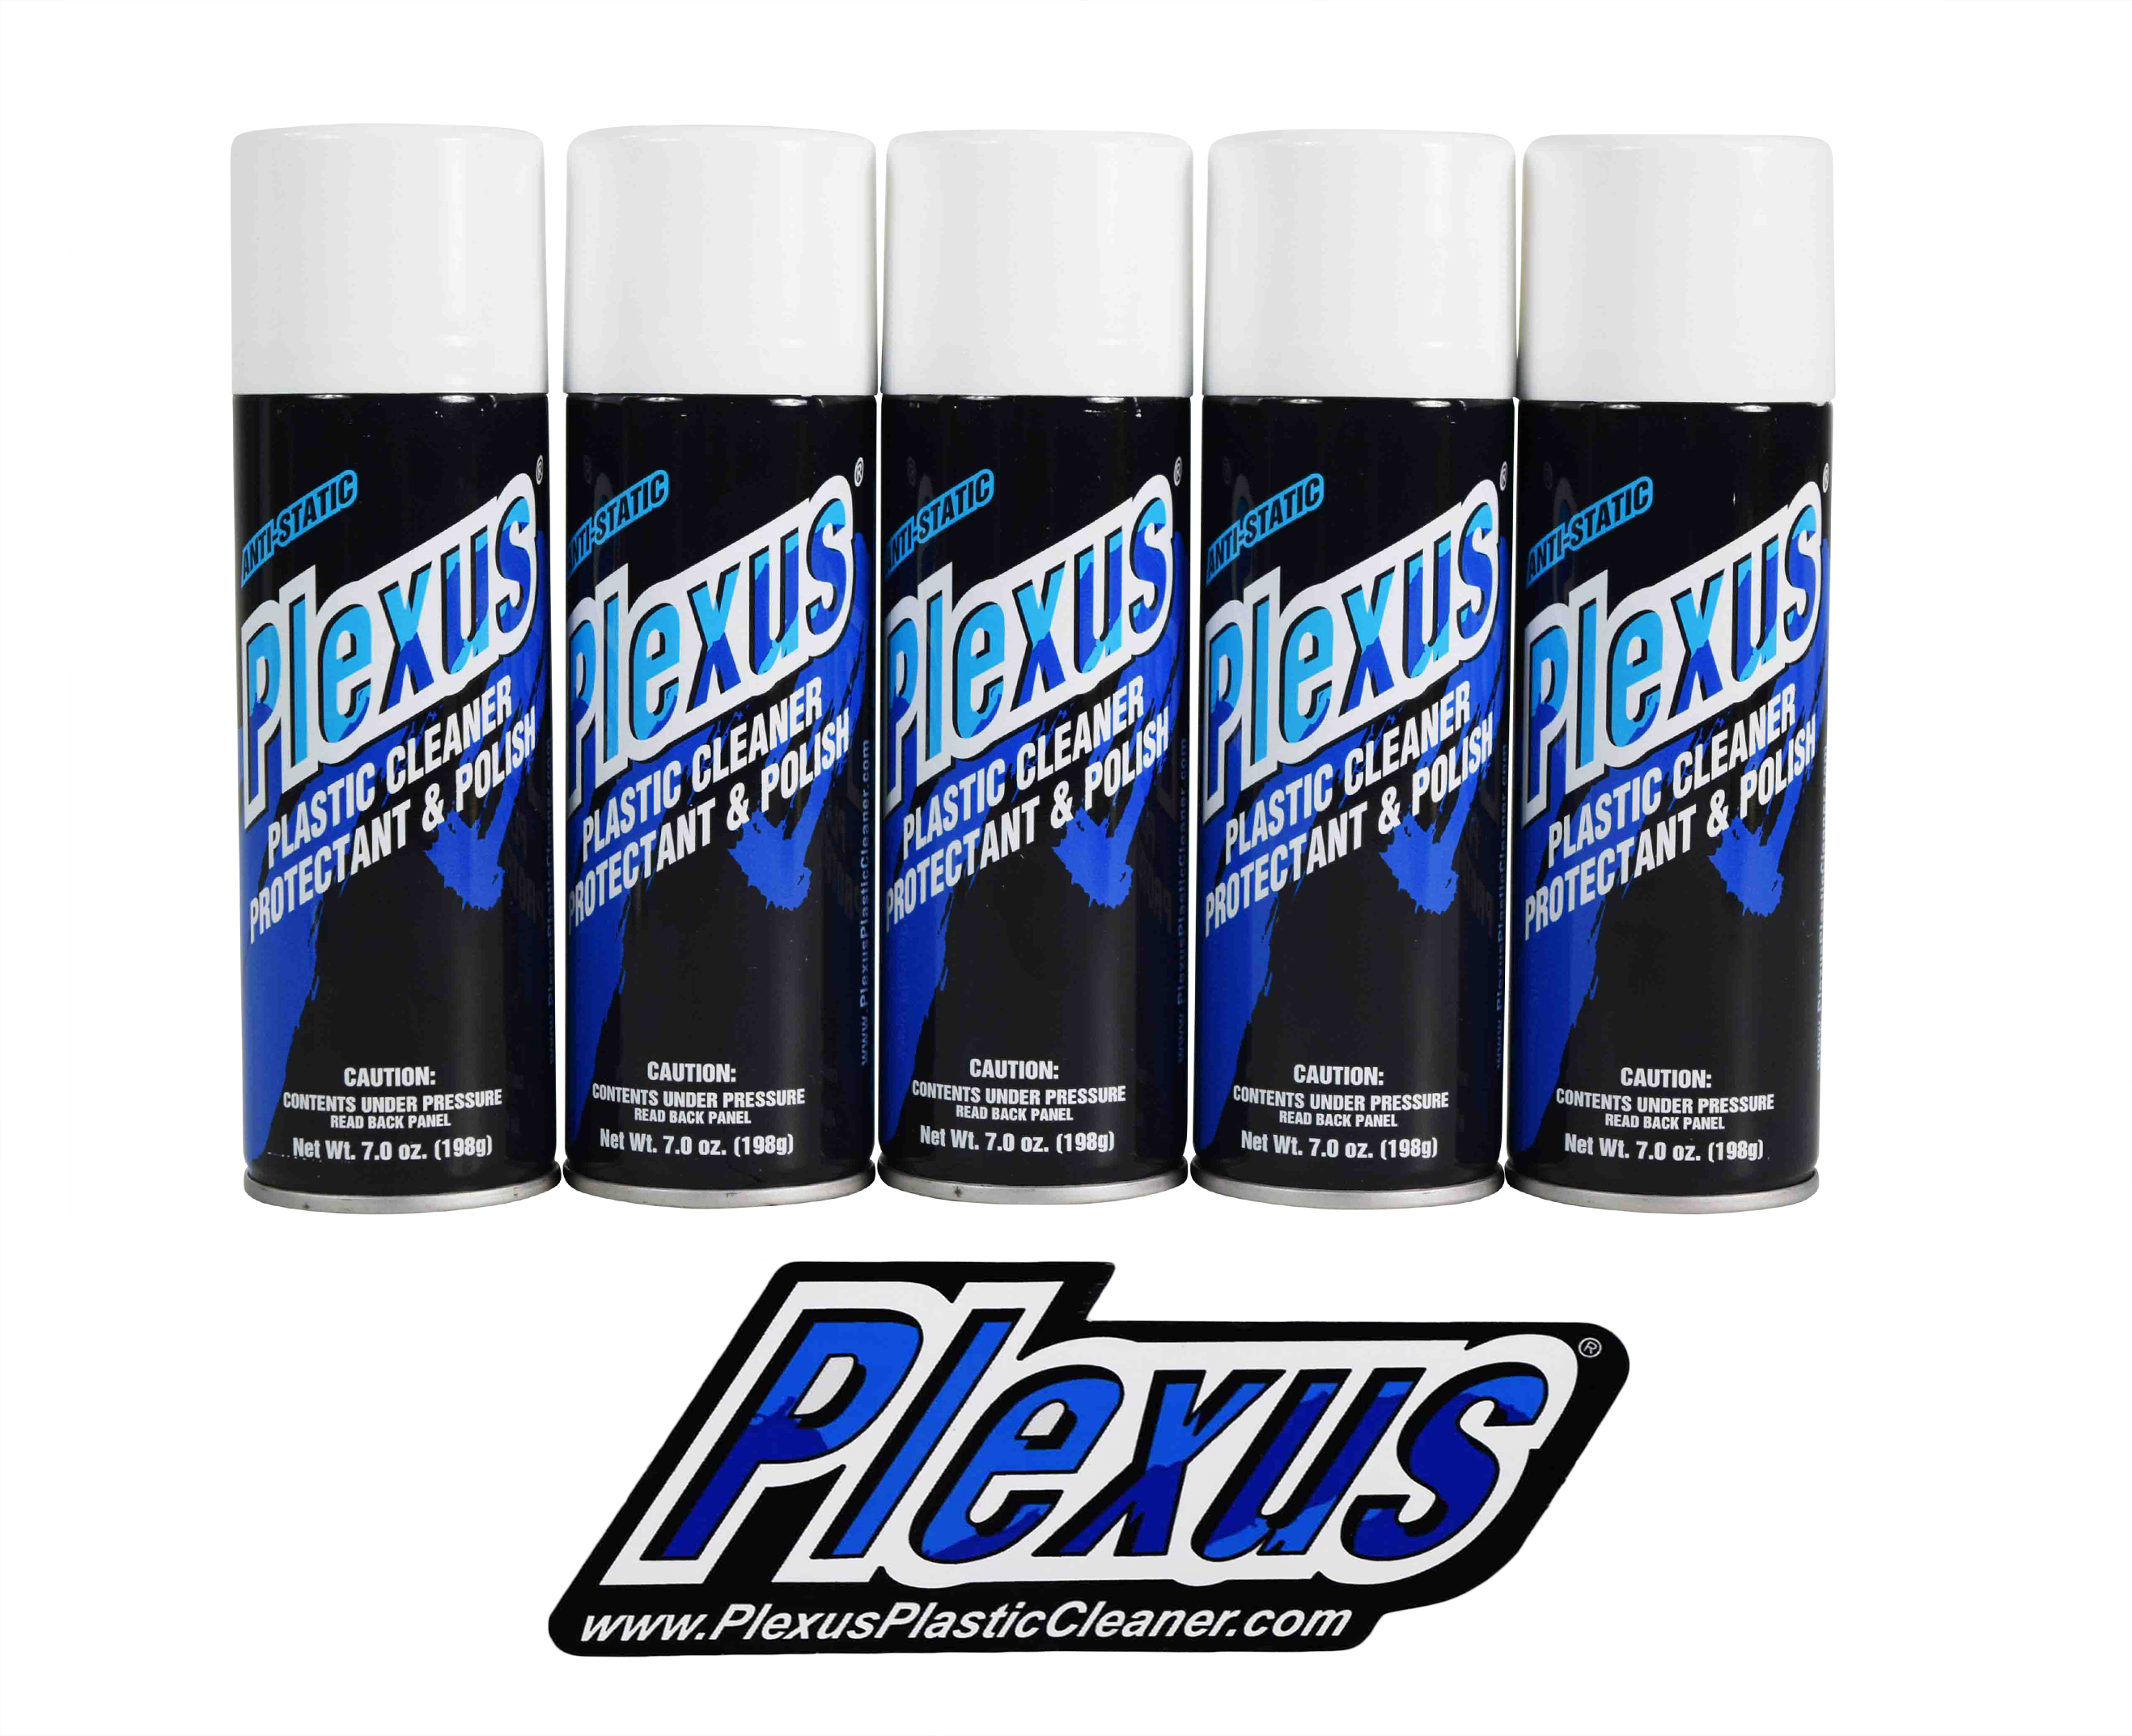 Plexus-Plastic-Cleaner-Protectant-Polish-7oz-Can-5-Pack-MADE-In-the-USA-image-1